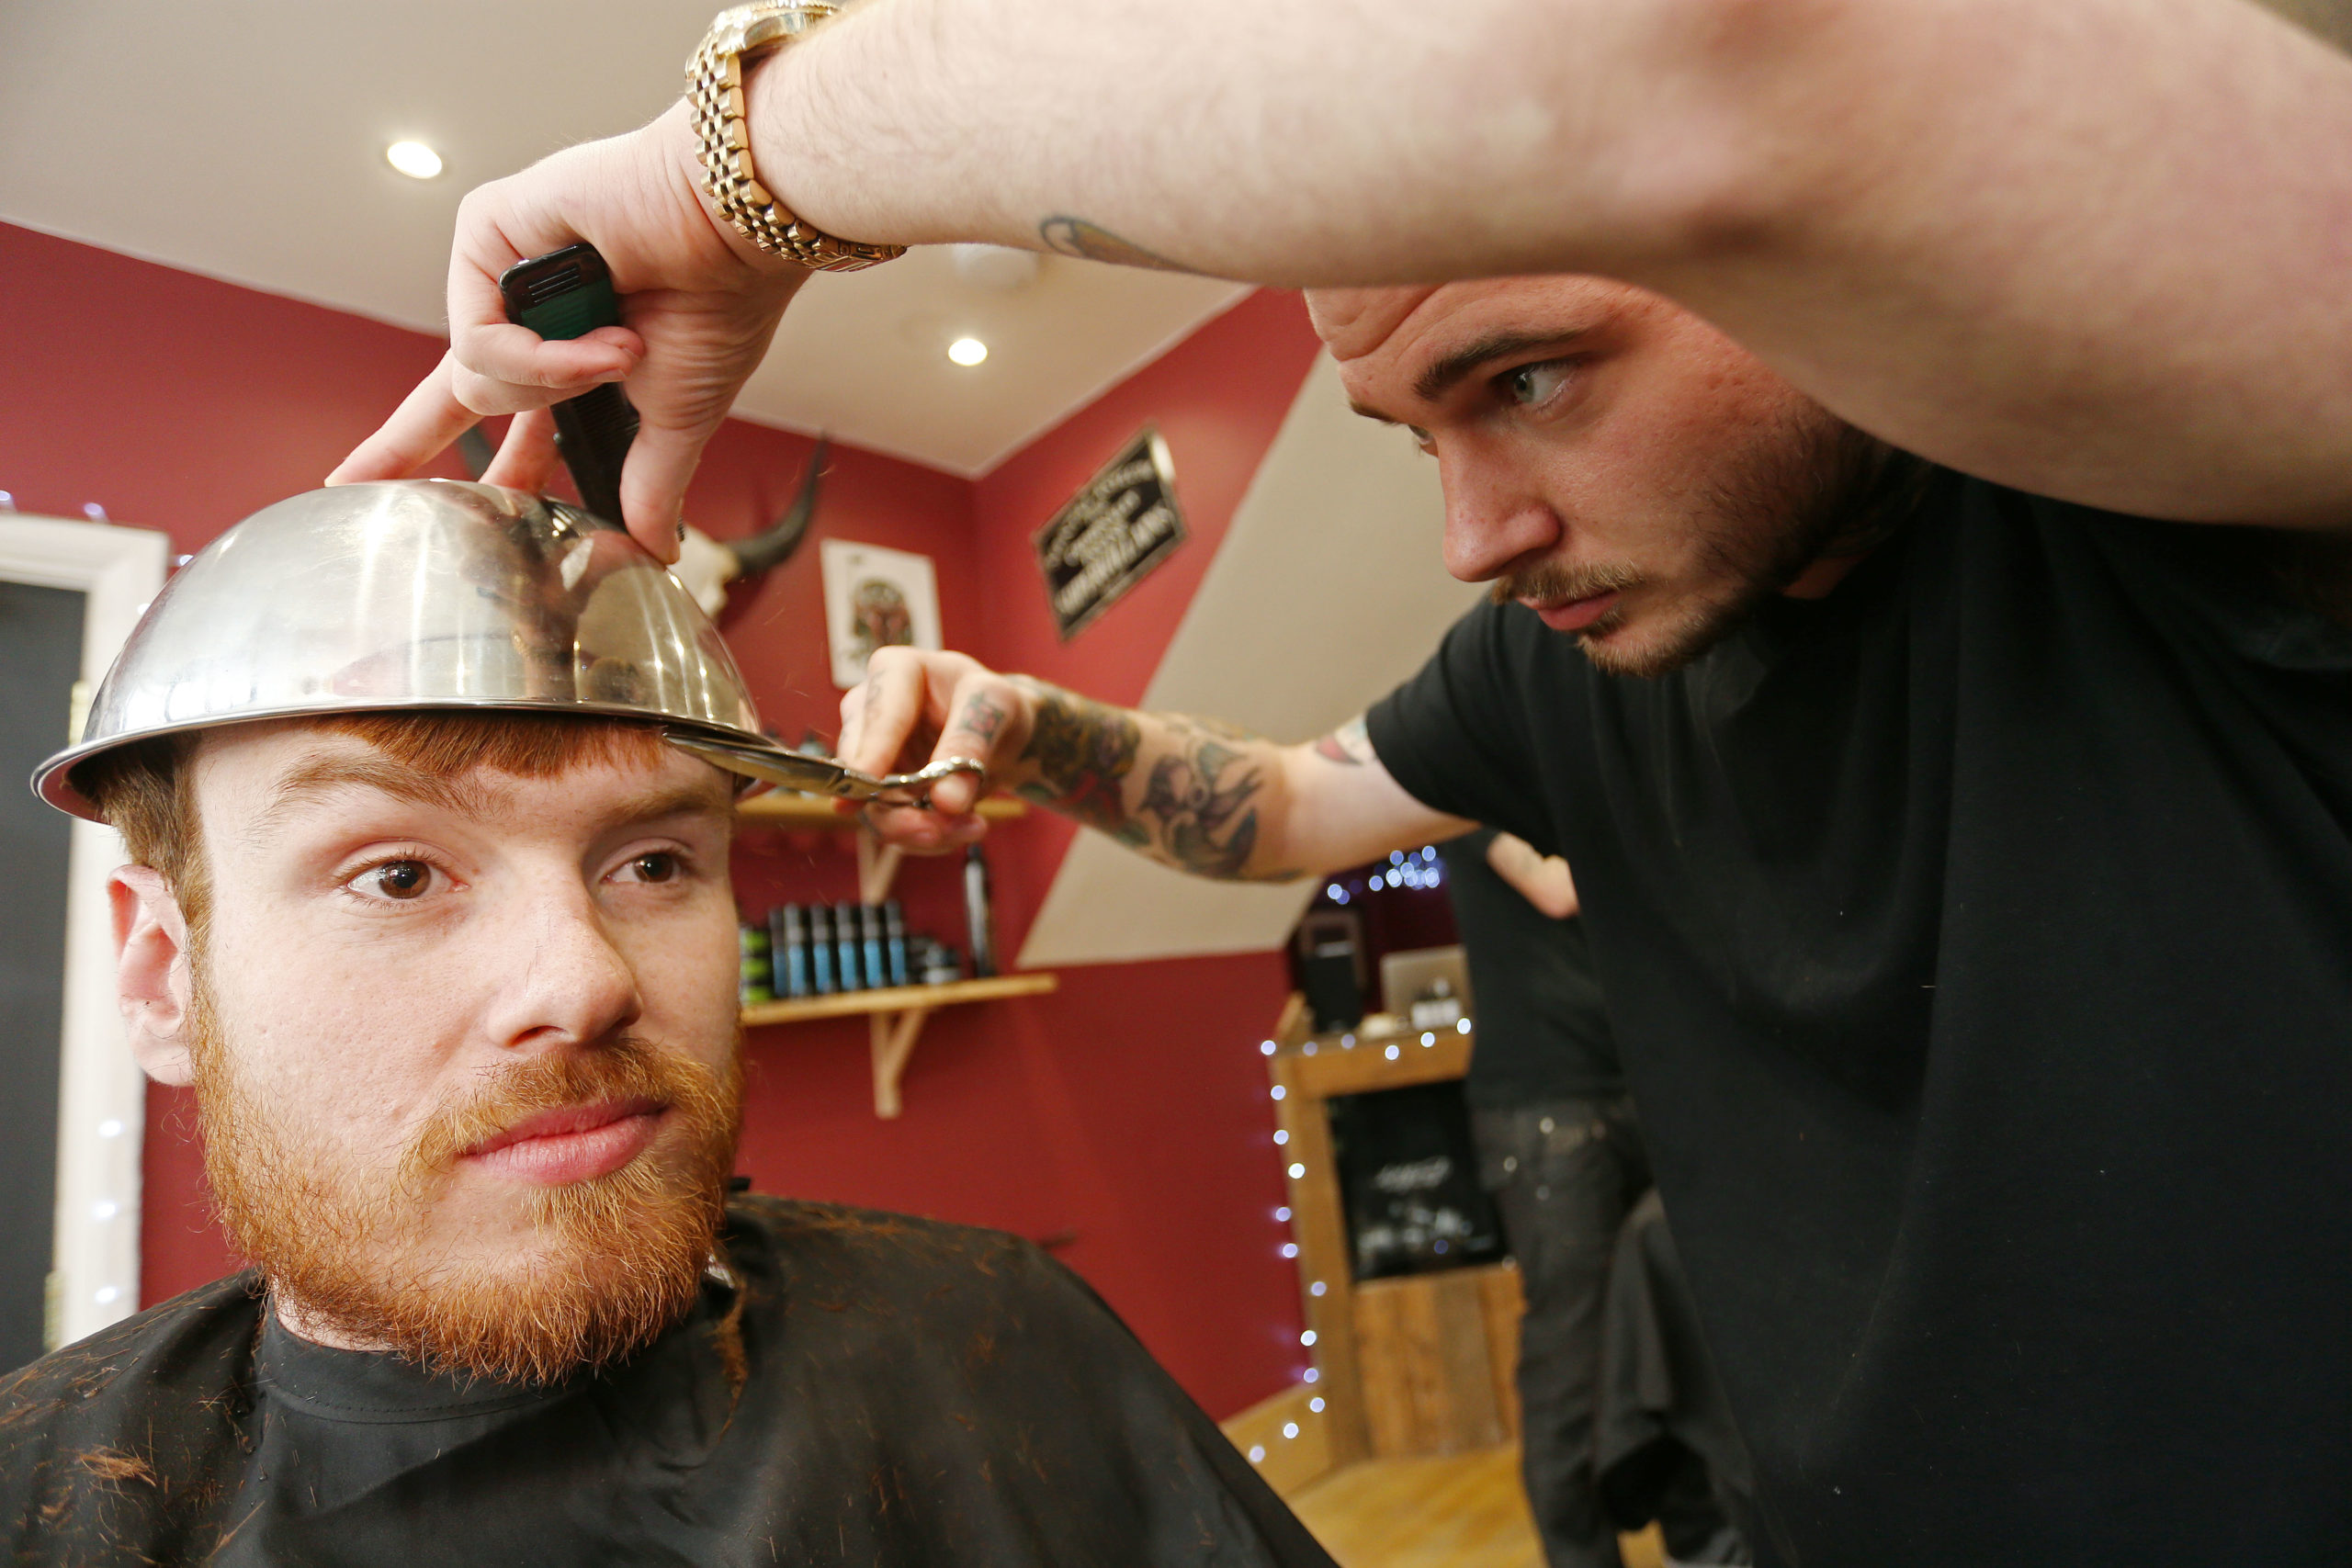 Photo by Joe Pepler/Shutterstock (4681781u) Customer gets the summer must-have style at Headcase Barbers Dumb and Dumber To - Bowl Cut Haircuts shoot, Richmond, London, Britain - 21 Apr 2015 Eager guys braved the 'bowl cut' trend, inspired by Jim Carey's character Lloyd Christmas in Dumb & Dumber To. Headcase Barbers has tipped the style as a must-have look for summer 2015. Dumb and Dumber To is out on Blu-ray and DVD now.